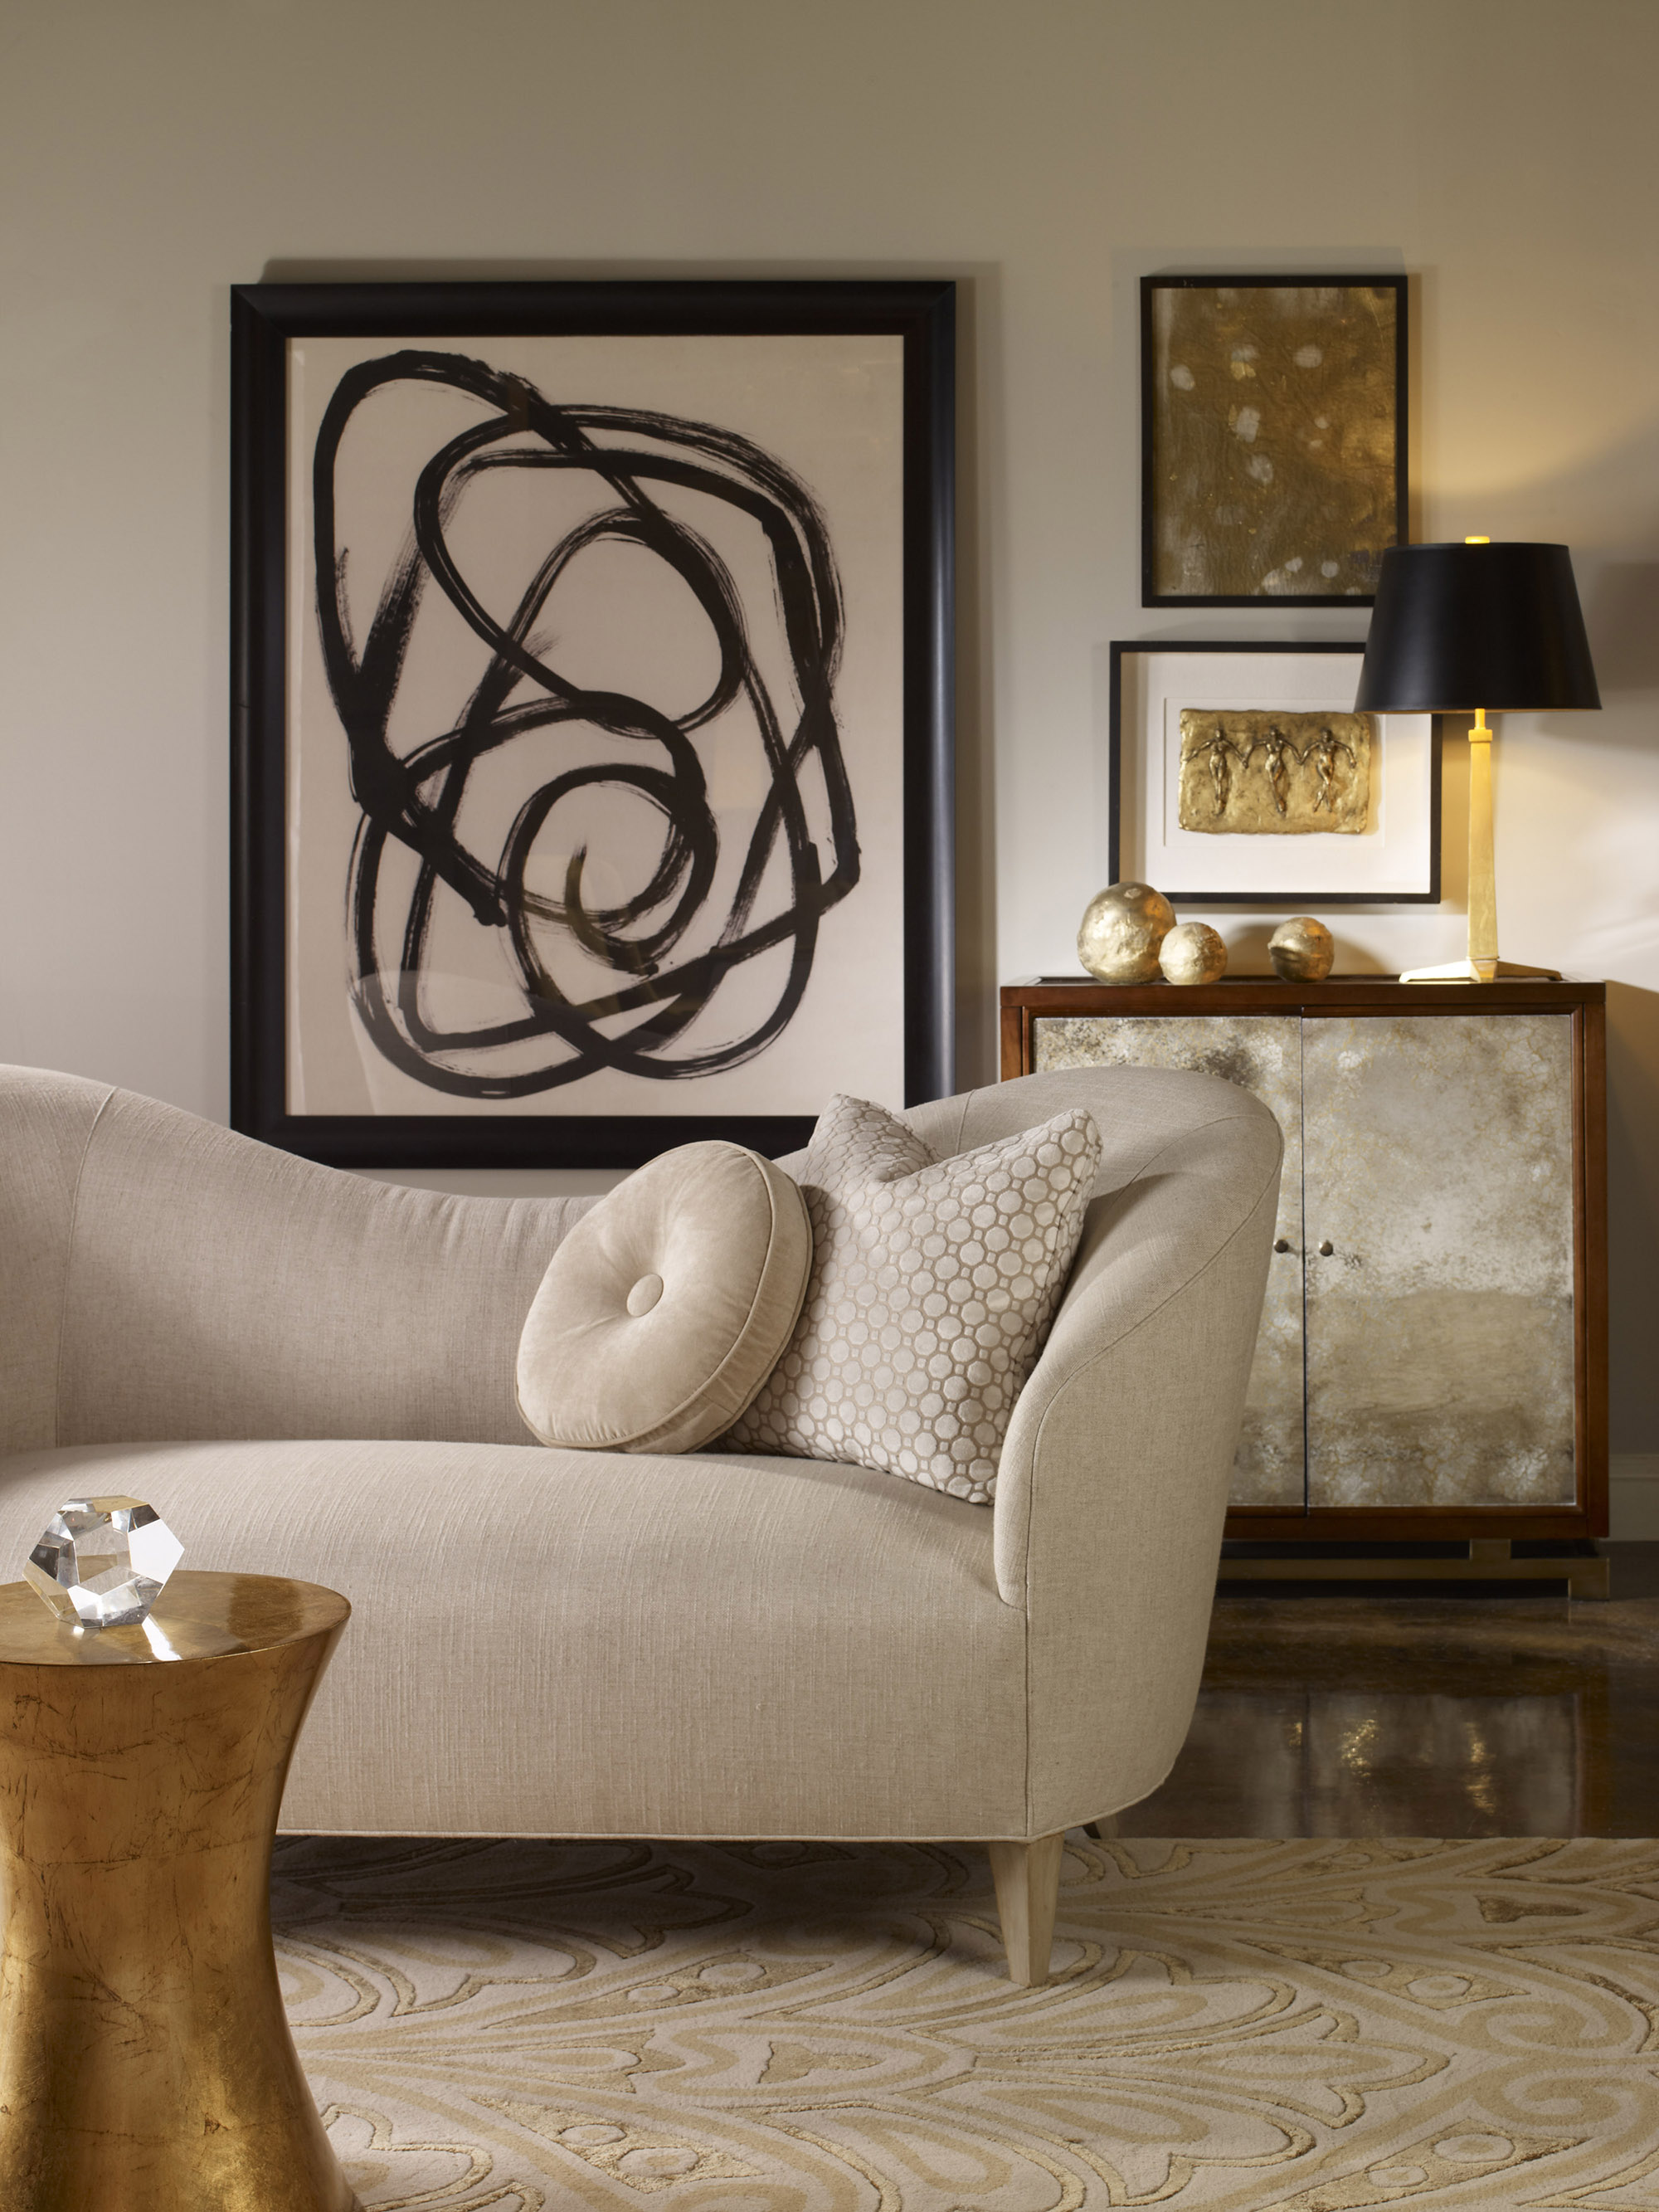 Design Services - From a pillow to a plan. With complimentary in-store design, to full service in home design, our team has you covered. room is a home store for michael P. design - after all.